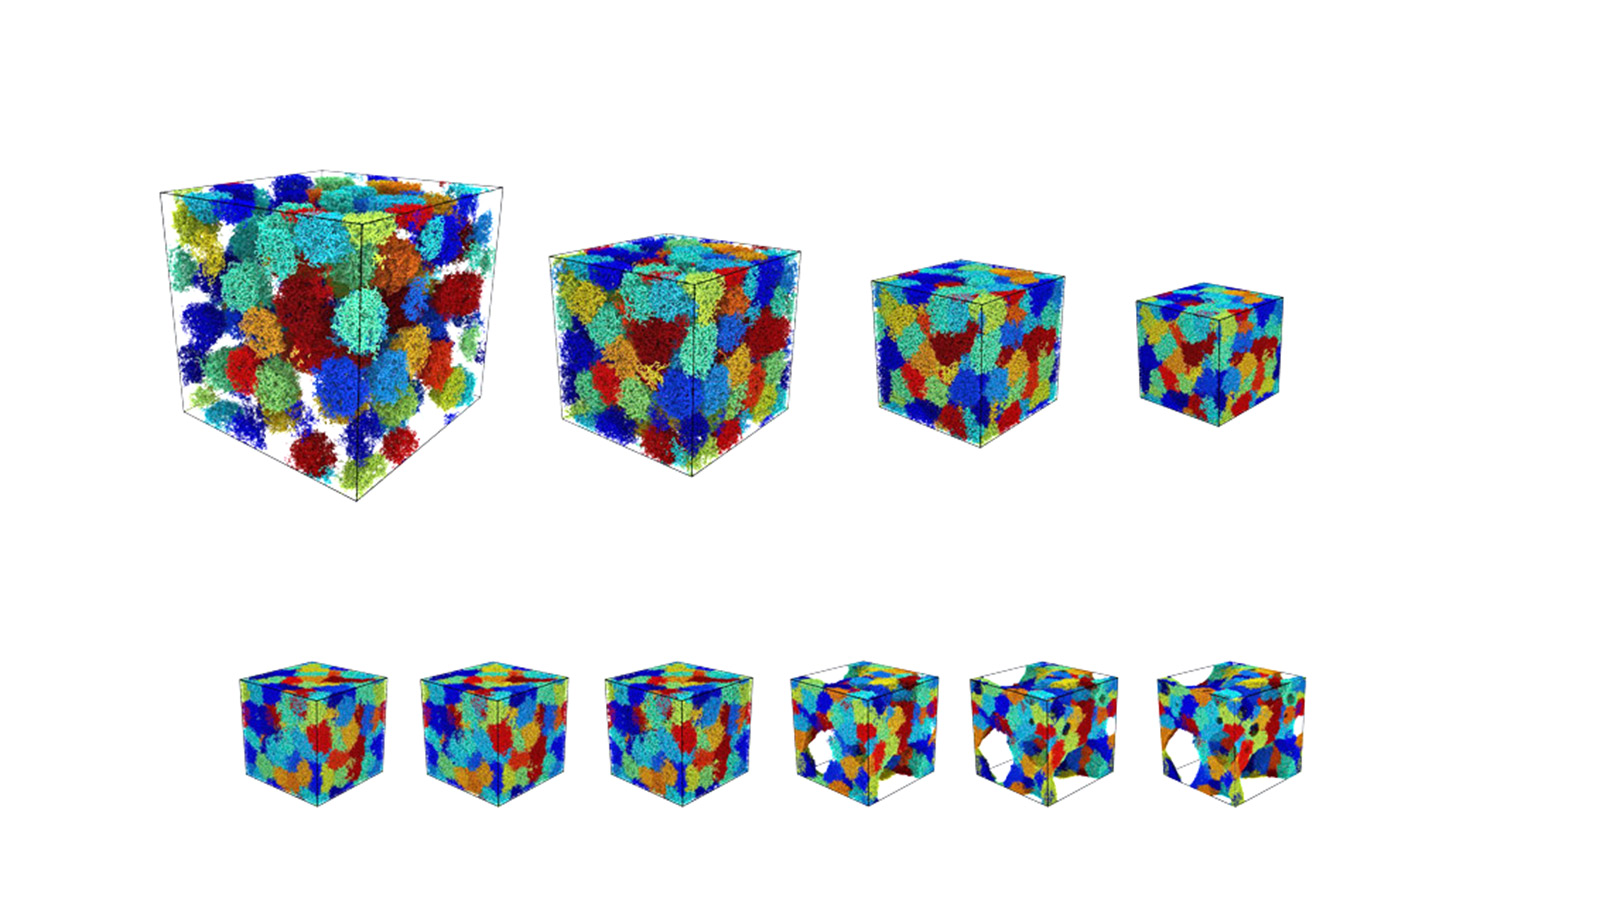 Simulations compress 'fluffy' microgel suspensions